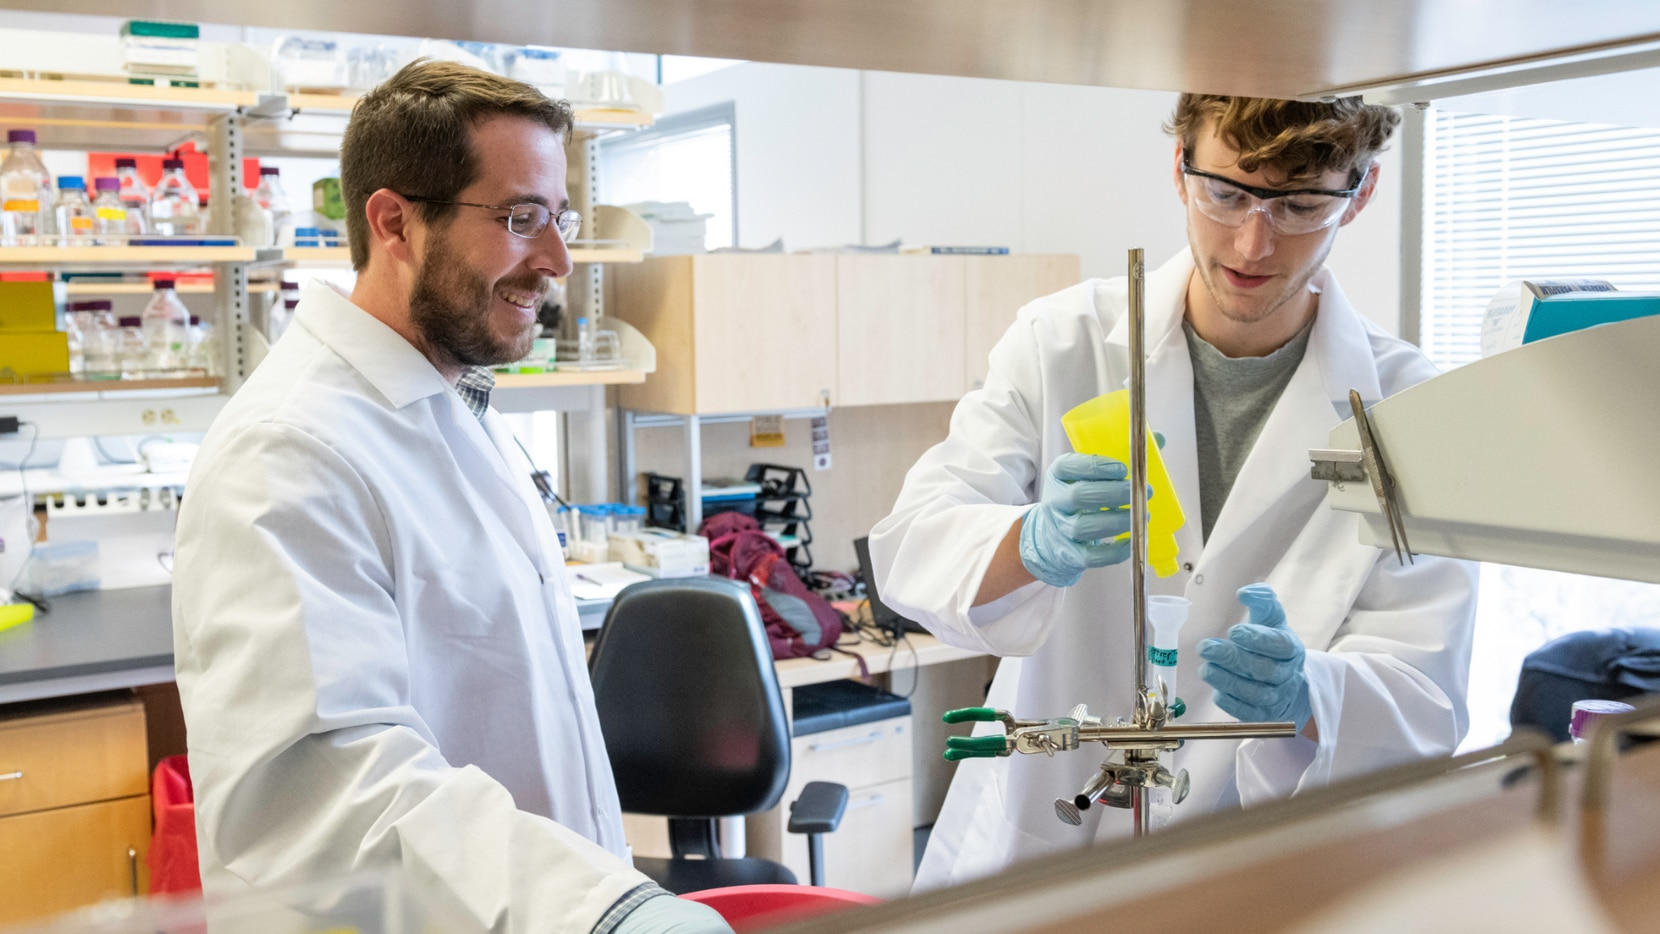 McLellan, an associate professor of molecular biosciences at UT, leads a research team that has helped other scientists understand the nature of the coronavirus.